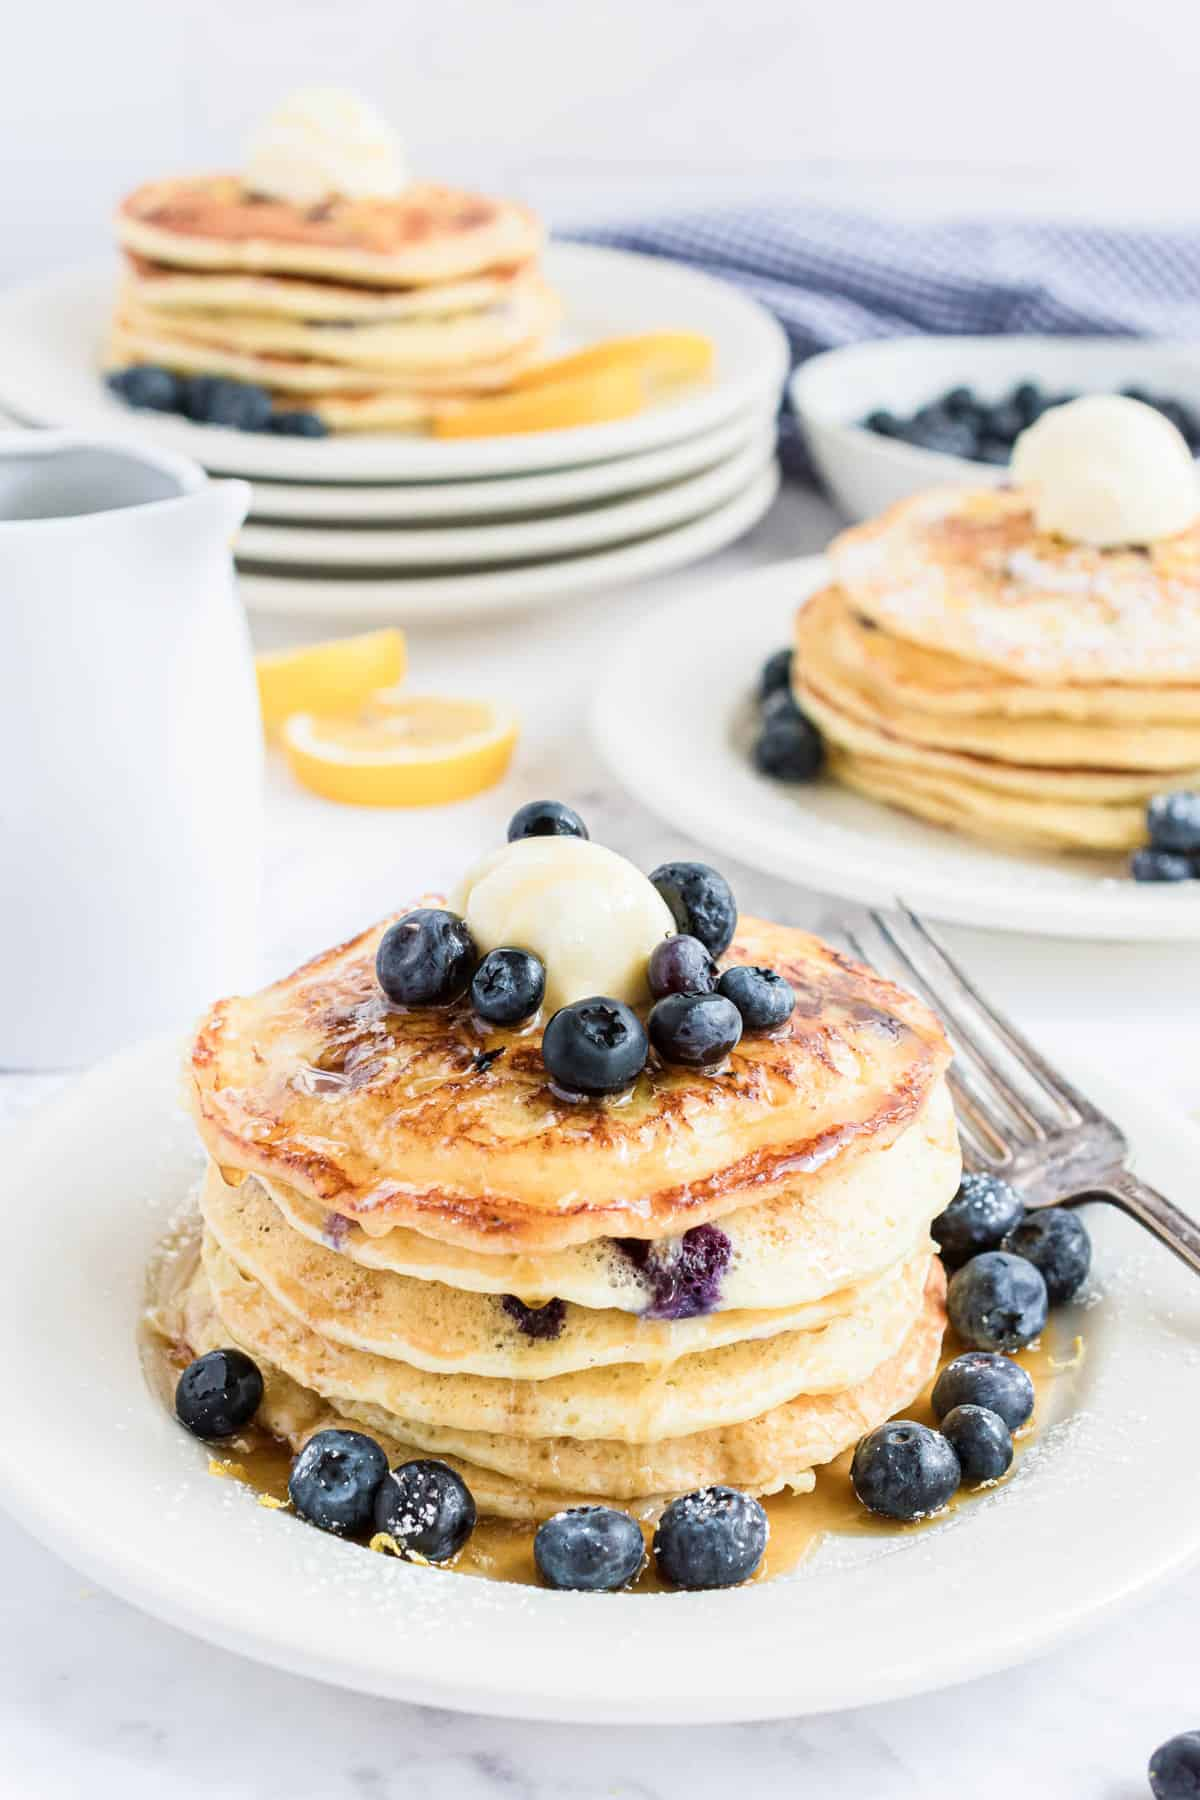 Stack of pancakes topped with scoop of butter, blueberries, and syrup.